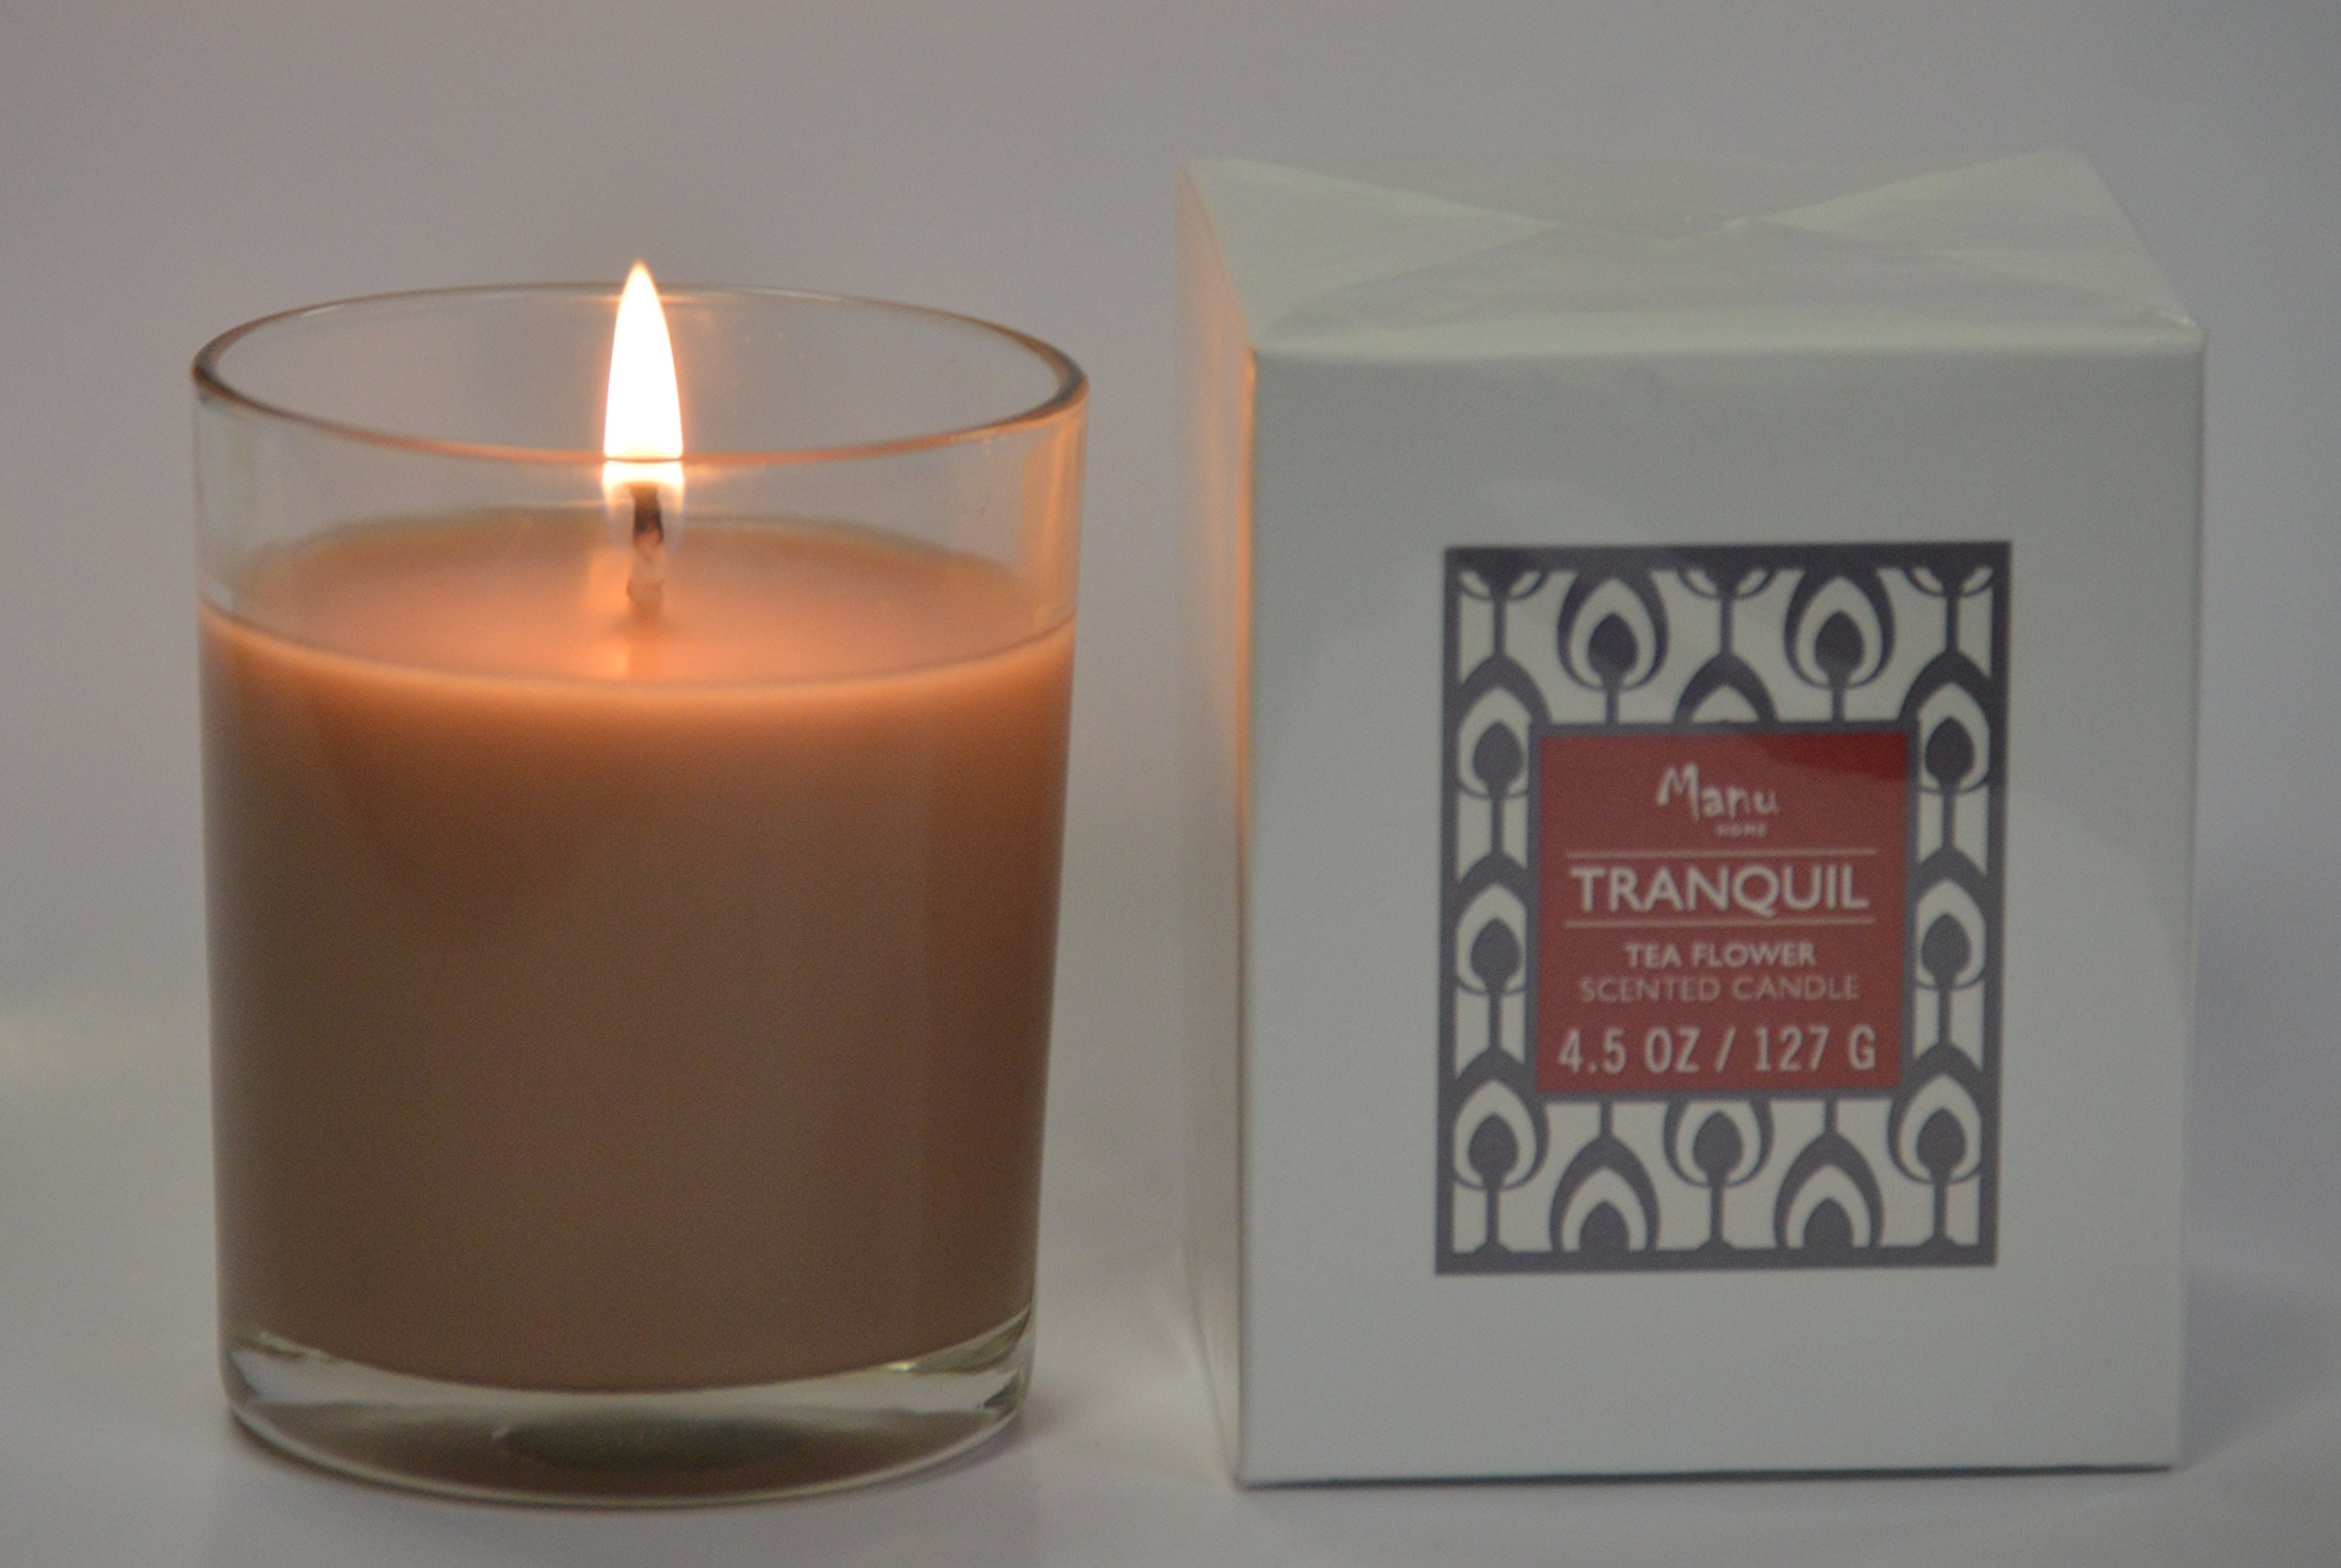 Manu Home Tranquil Scented Candle ~ Soothing Aromatherapy relaxation scent~